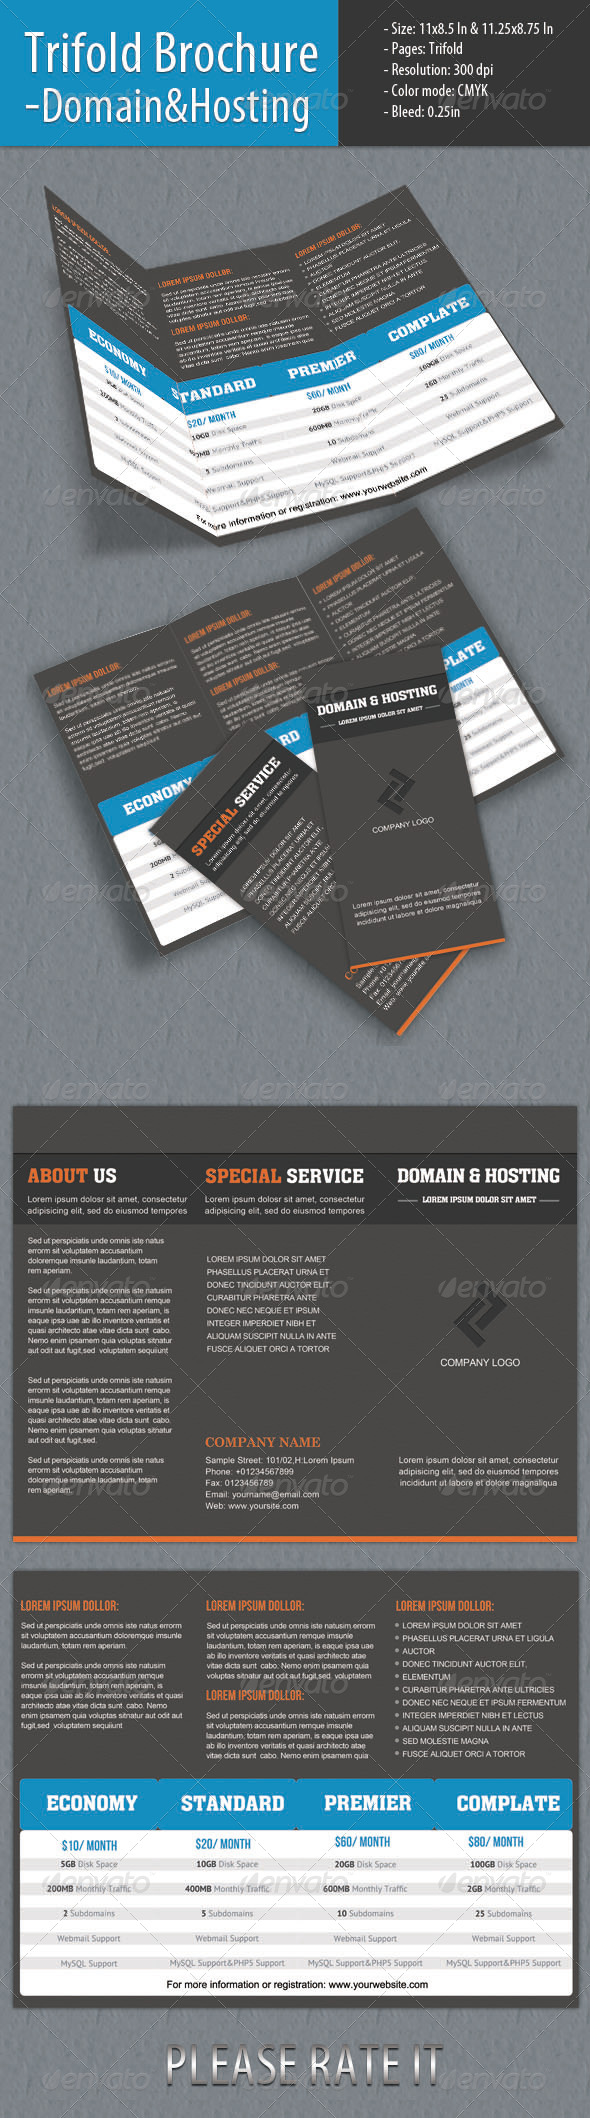 Trifold Brochure Domain & Hosting